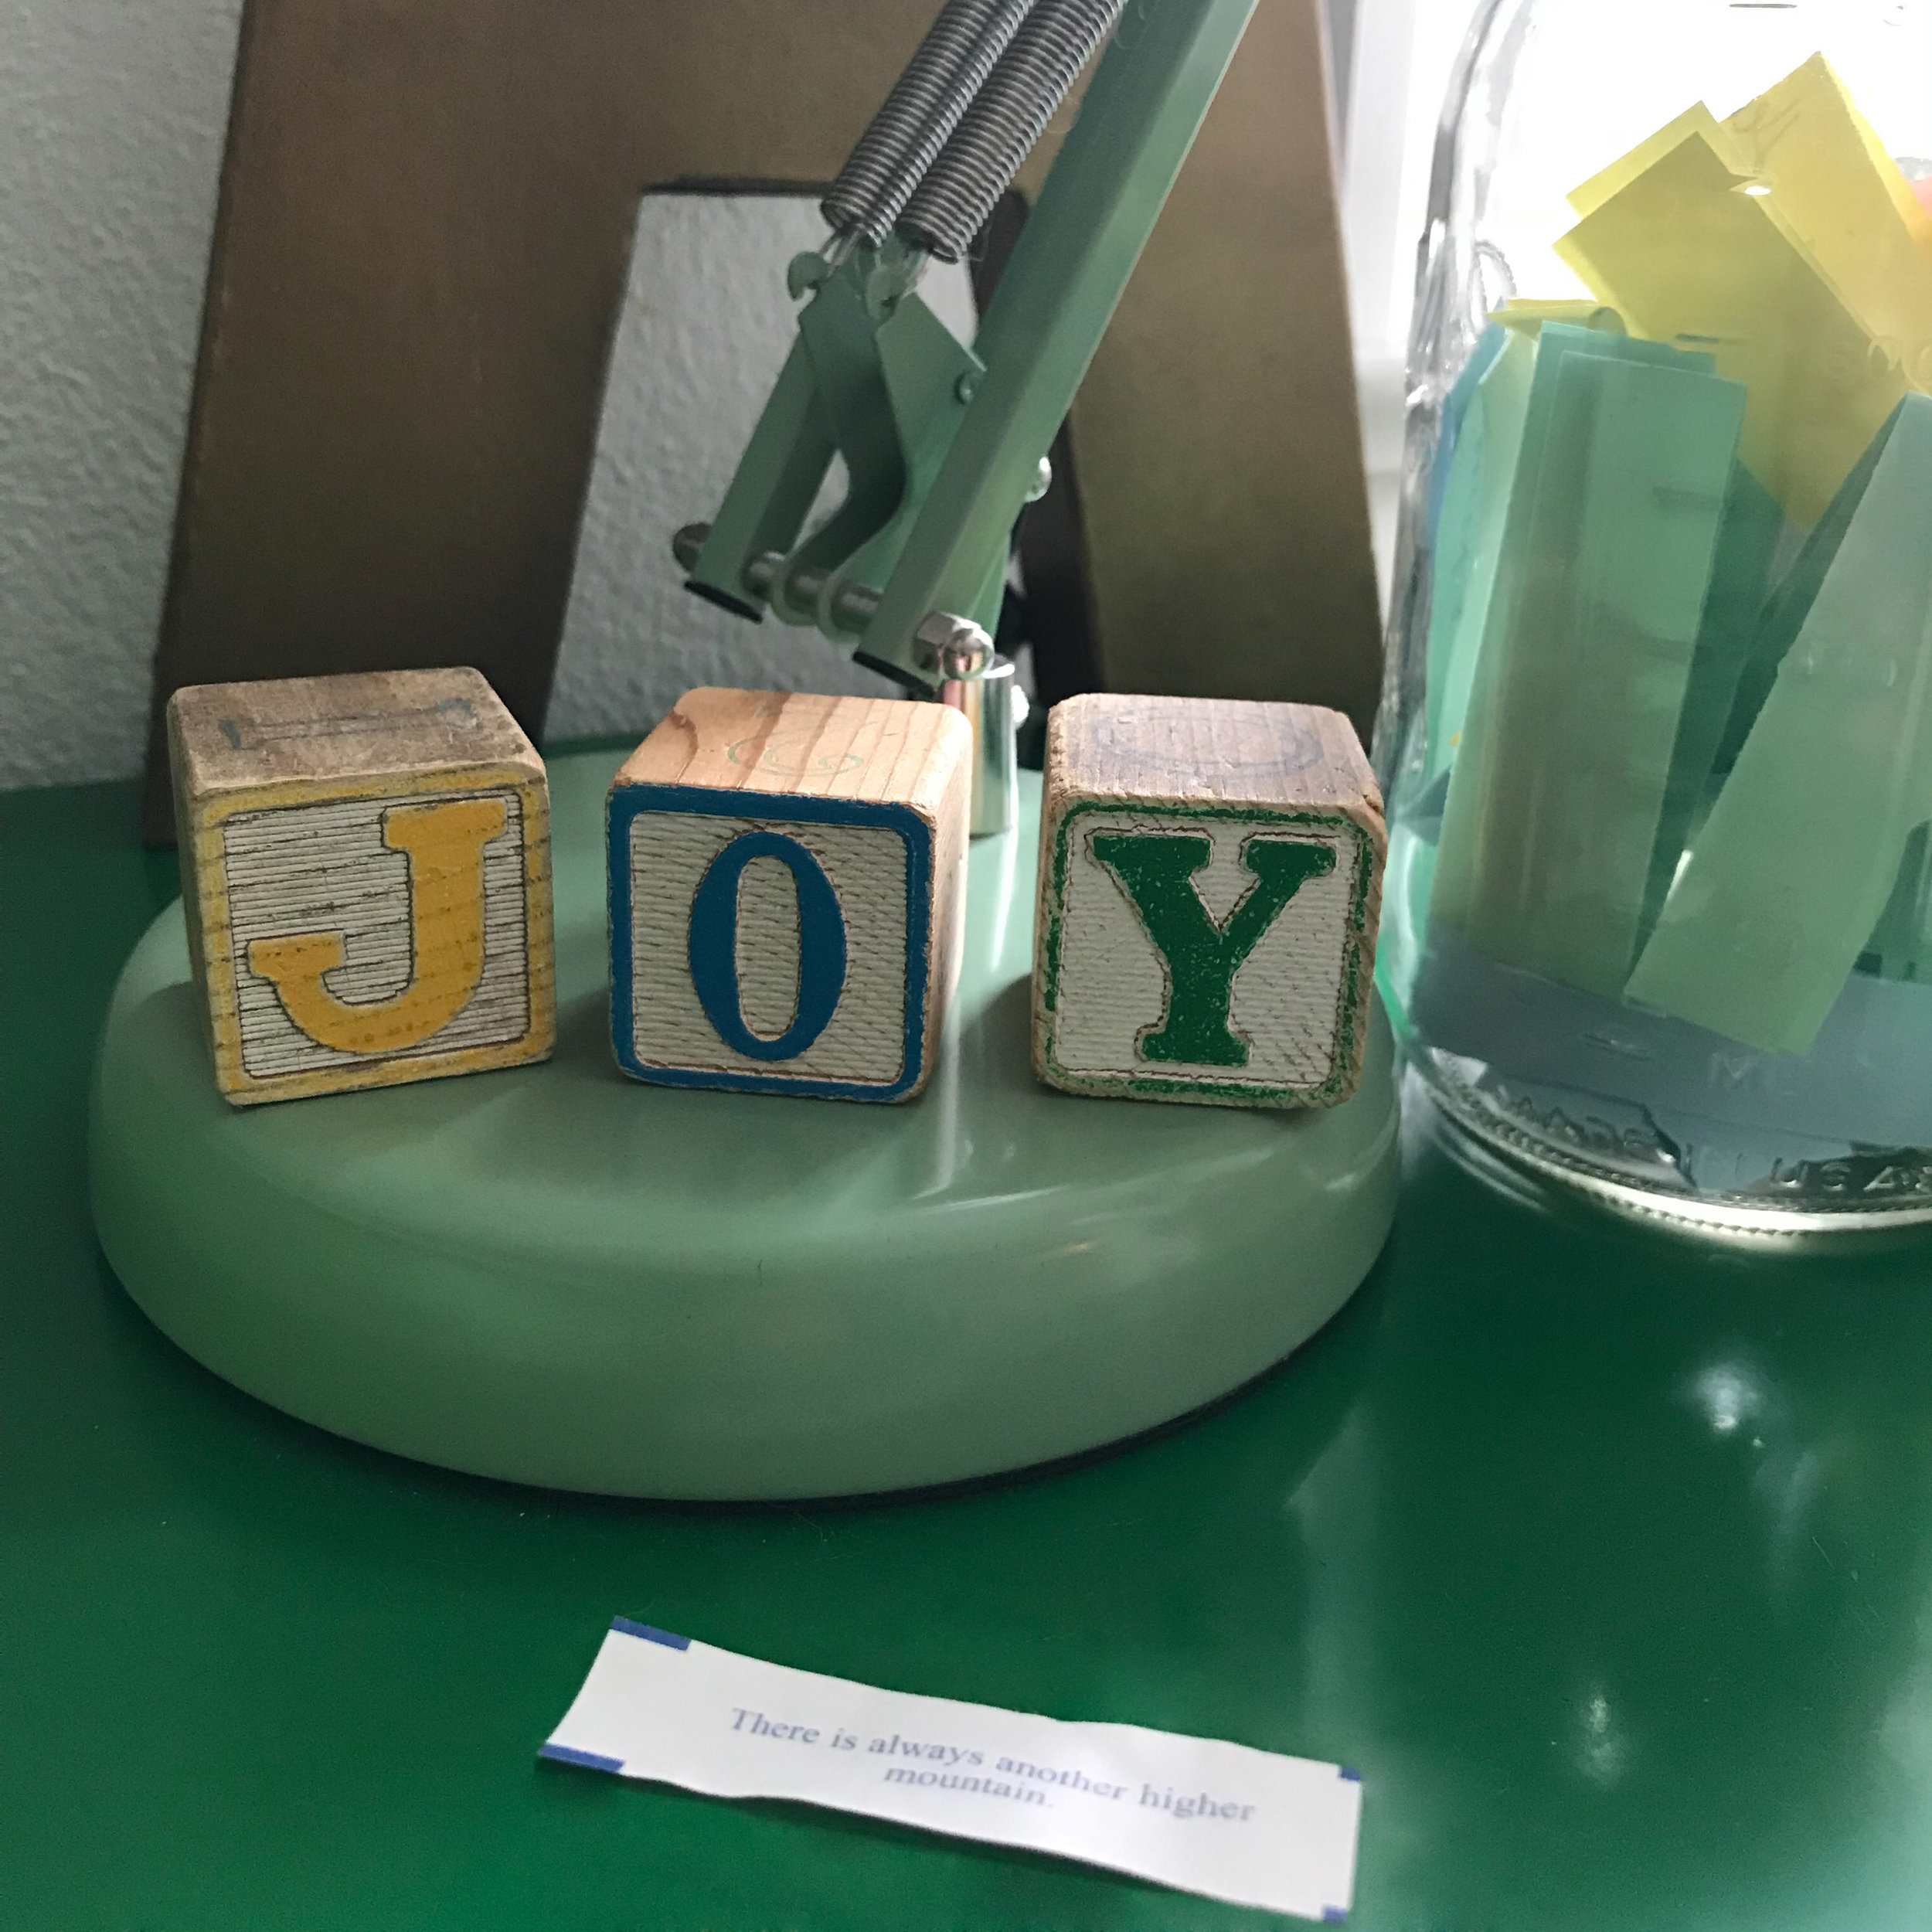 Joy, Fortune Cookie Encouragement and Dream Jar Inspiring Me to Keep Dreaming Big